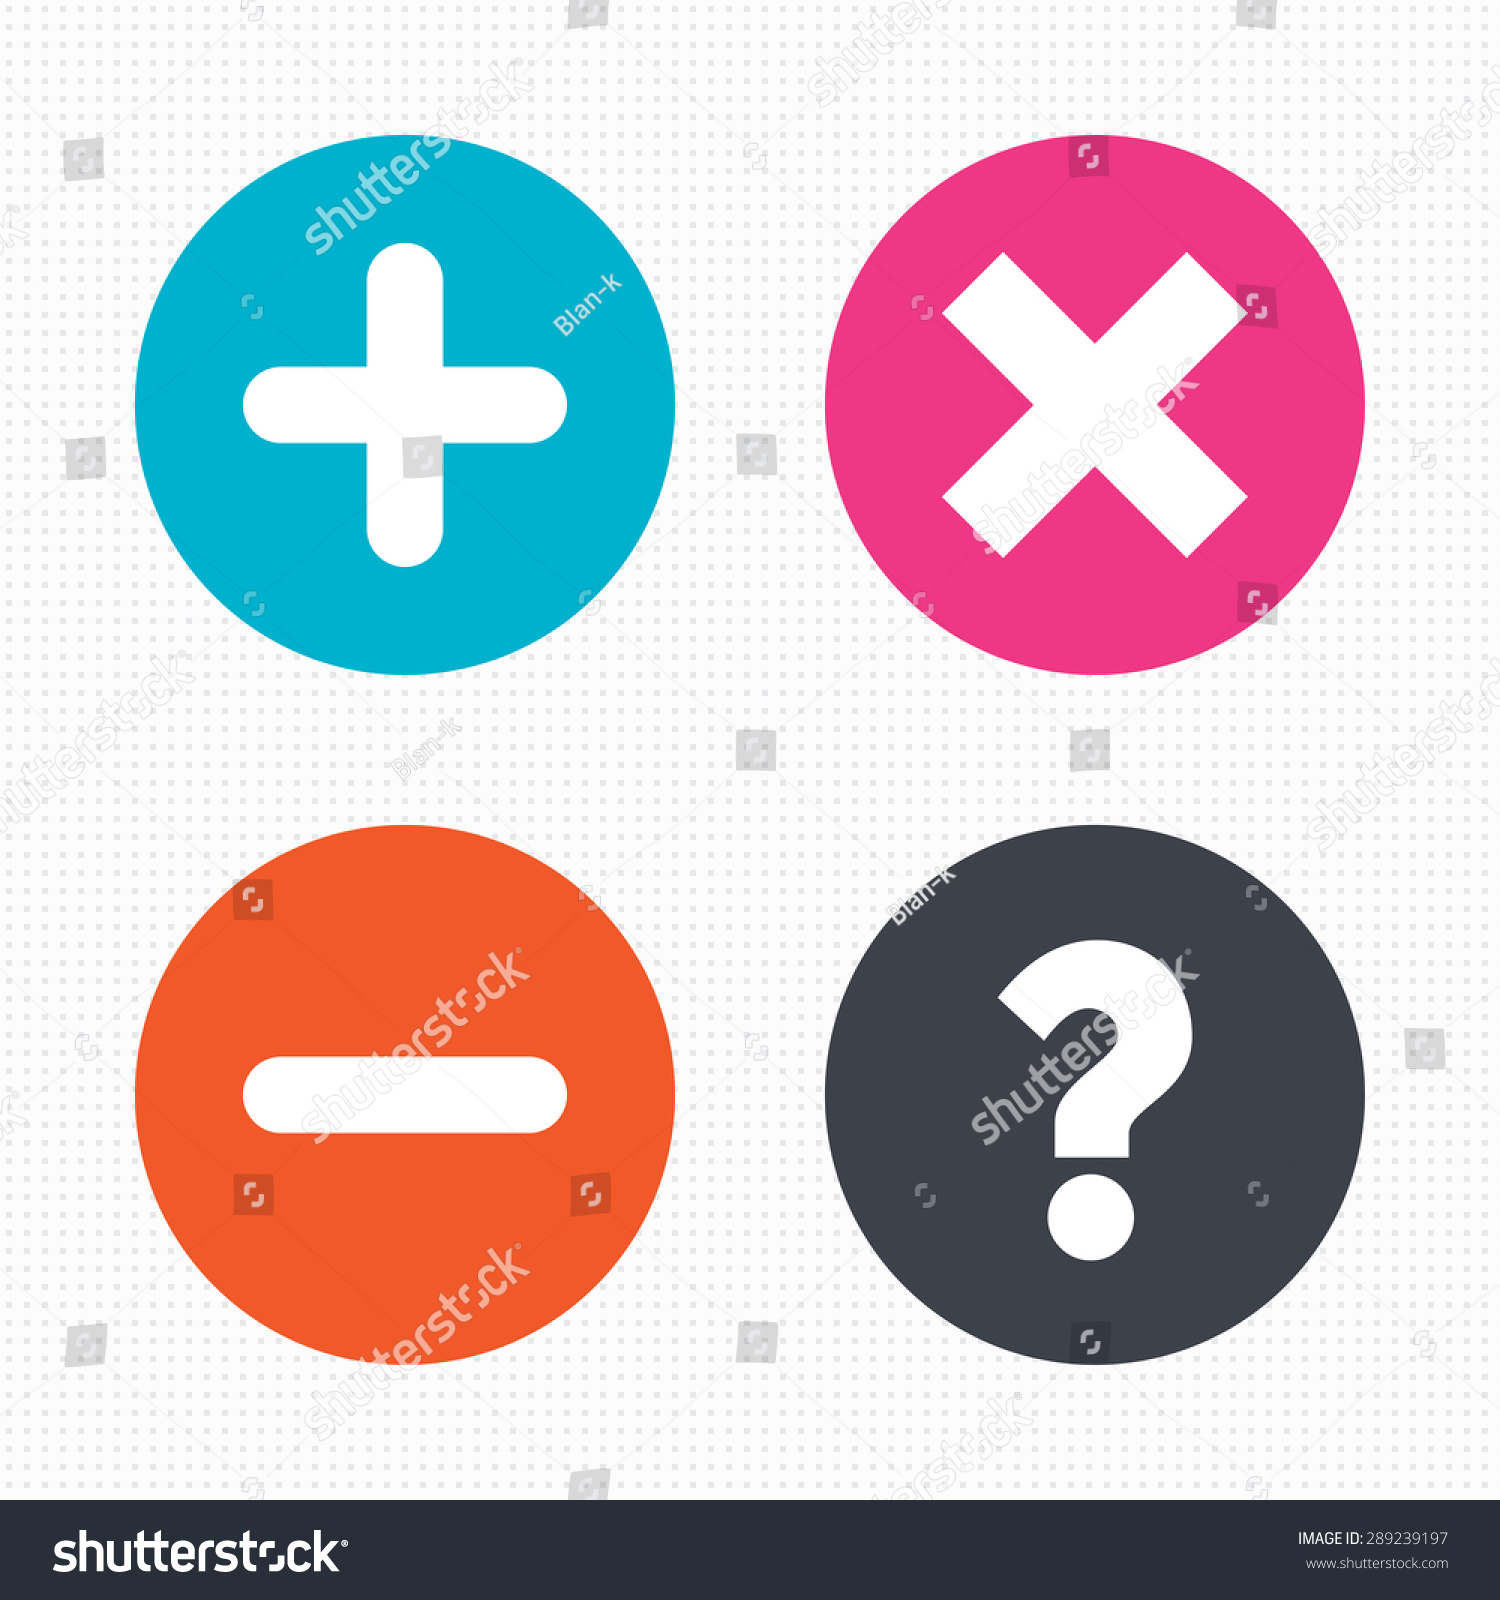 Royalty free circle buttons plus and minus icons 289239197 circle buttons plus and minus icons delete and question faq mark signs enlarge zoom symbol seamless squares texture vector stock photo buycottarizona